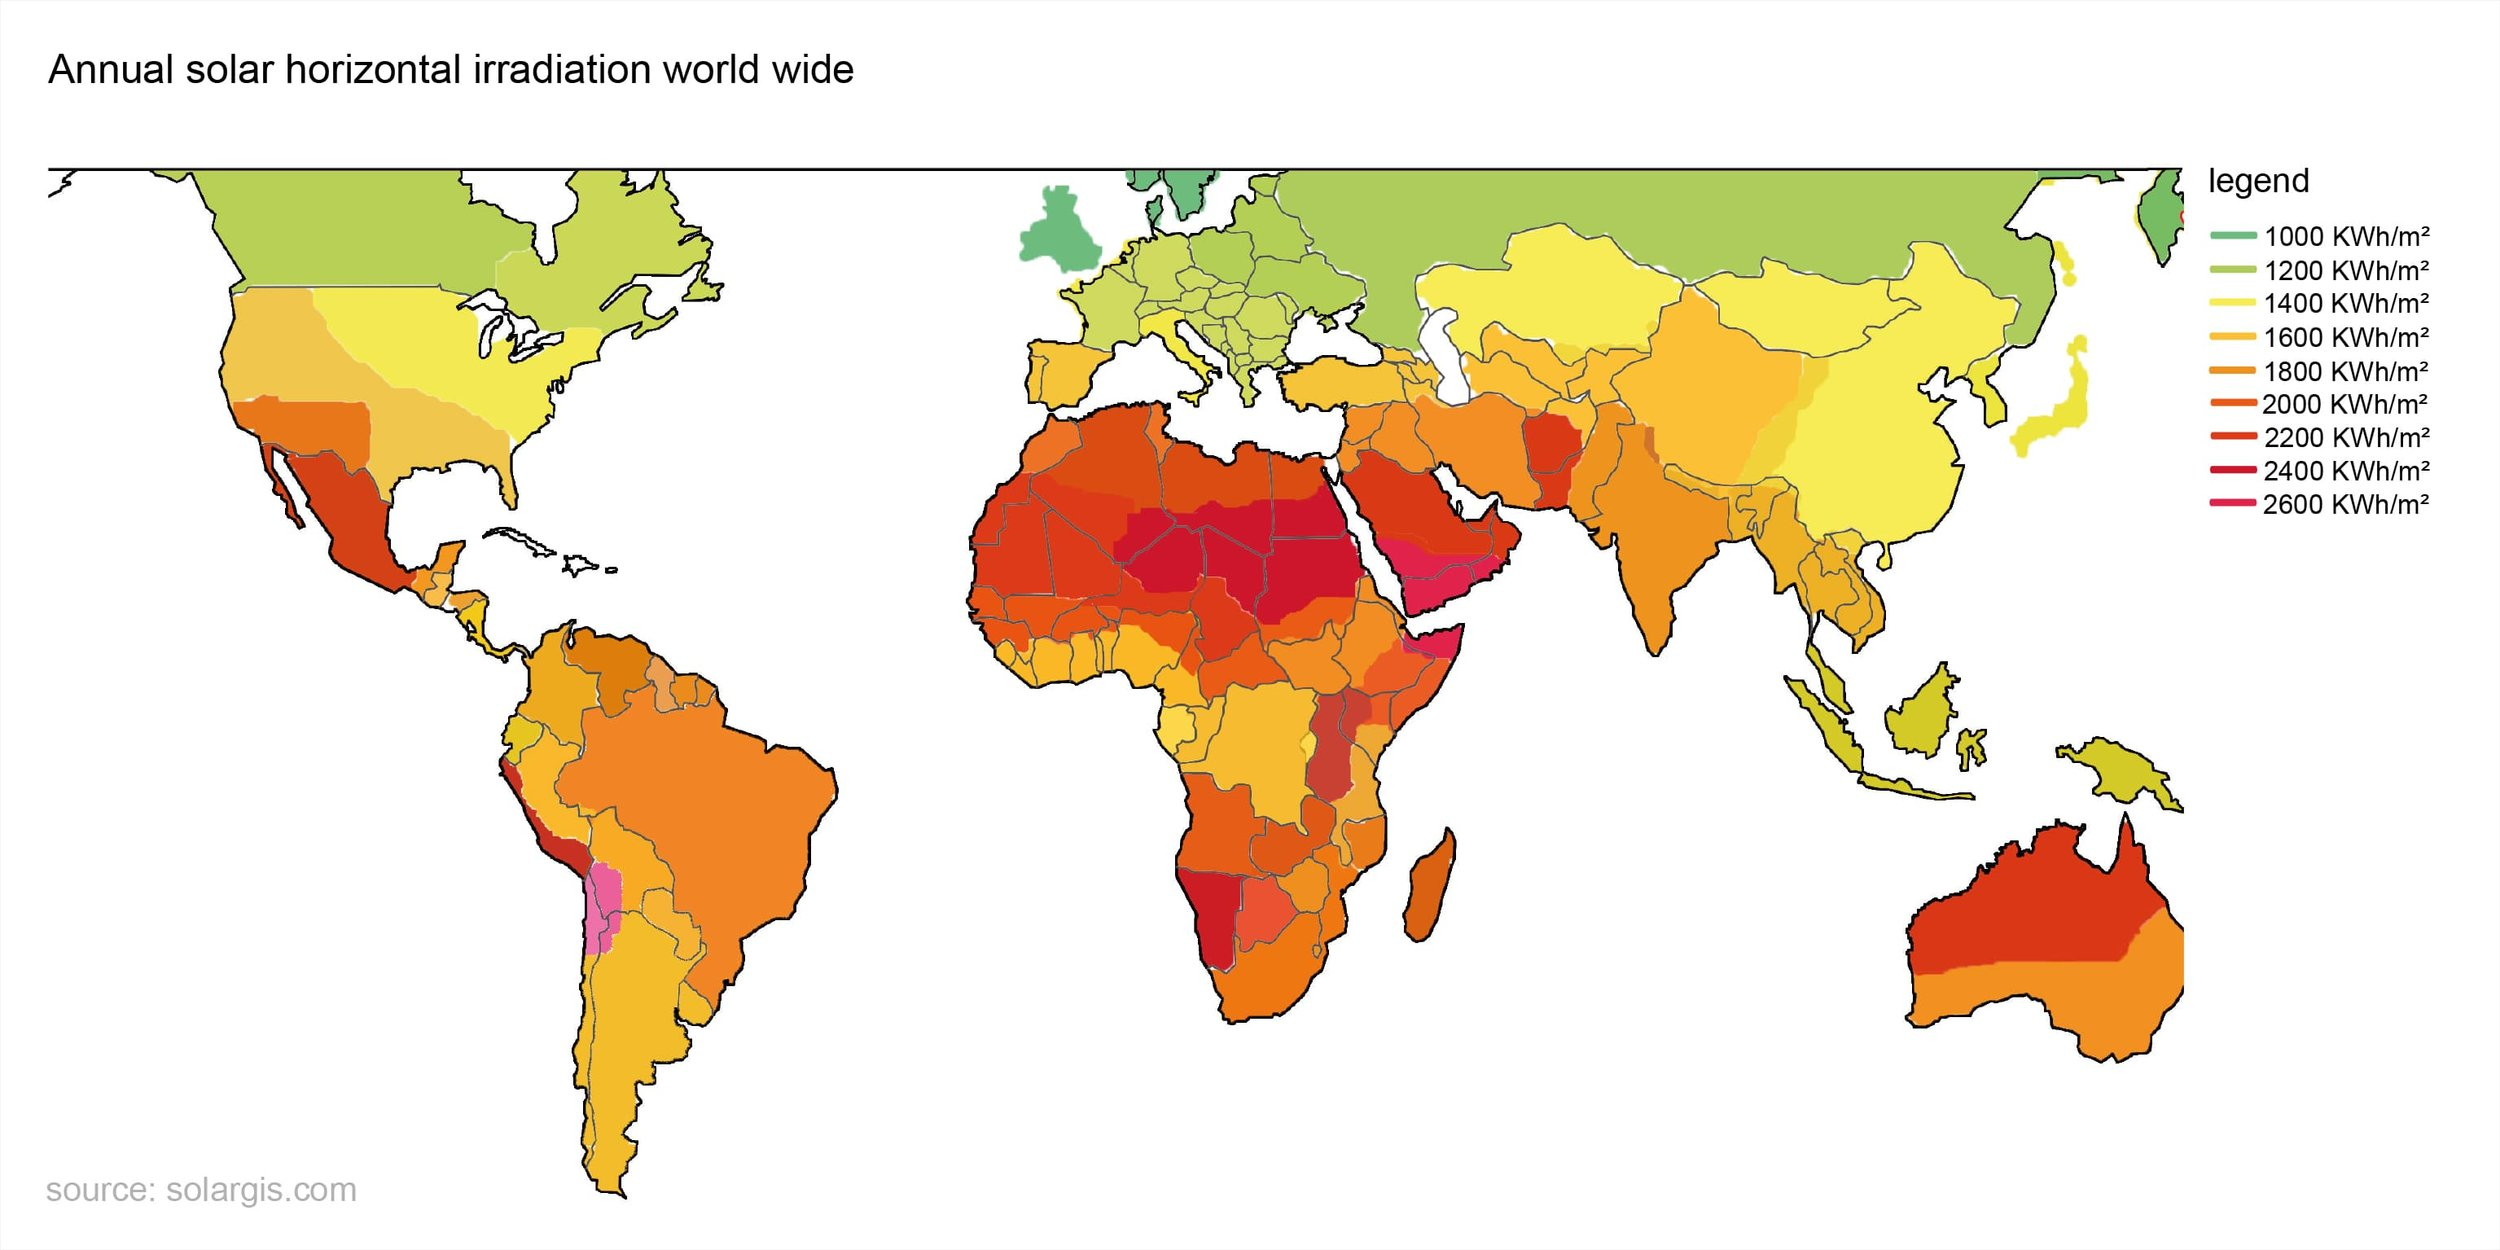 Oman is one of the countries with the highest solar radiation in the world.